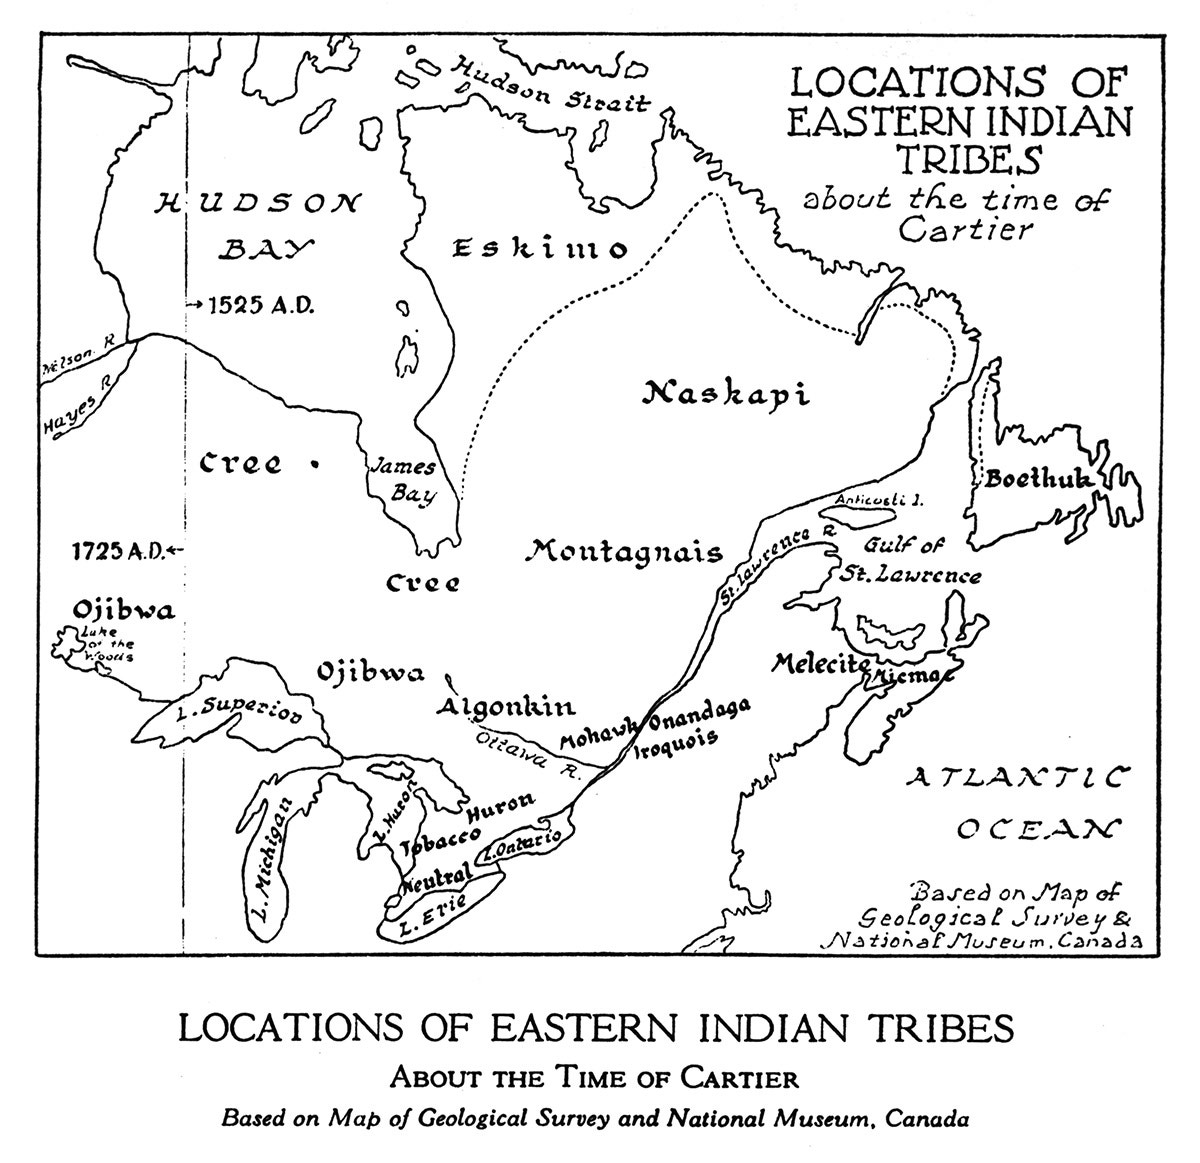 Eastern tribes: a selection of sites